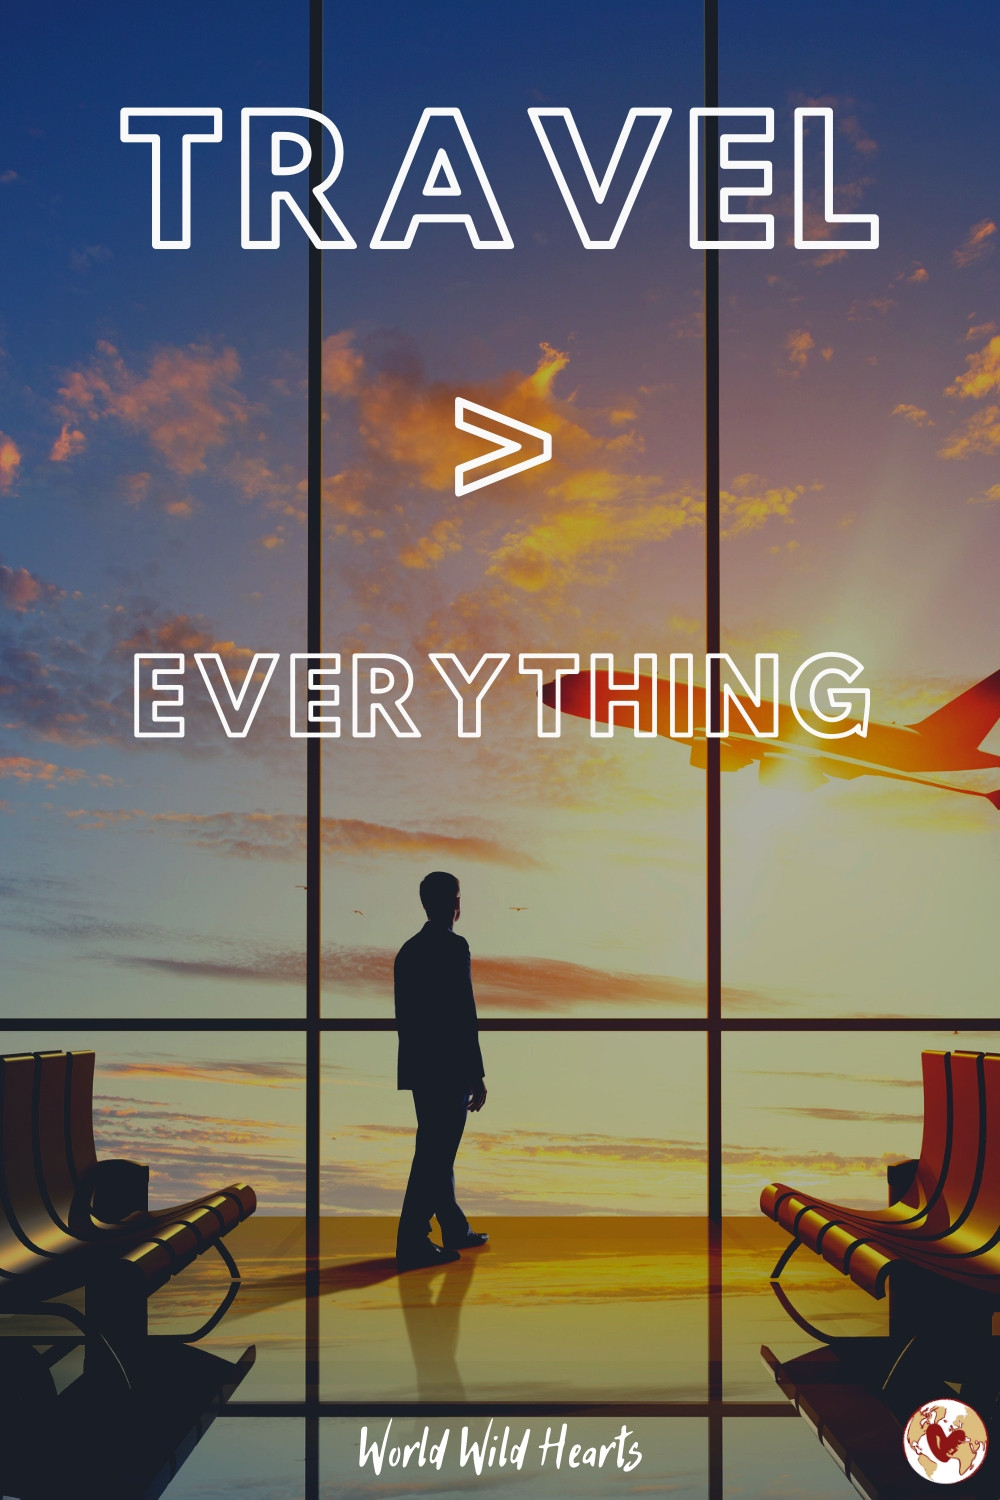 Travel over everything quote